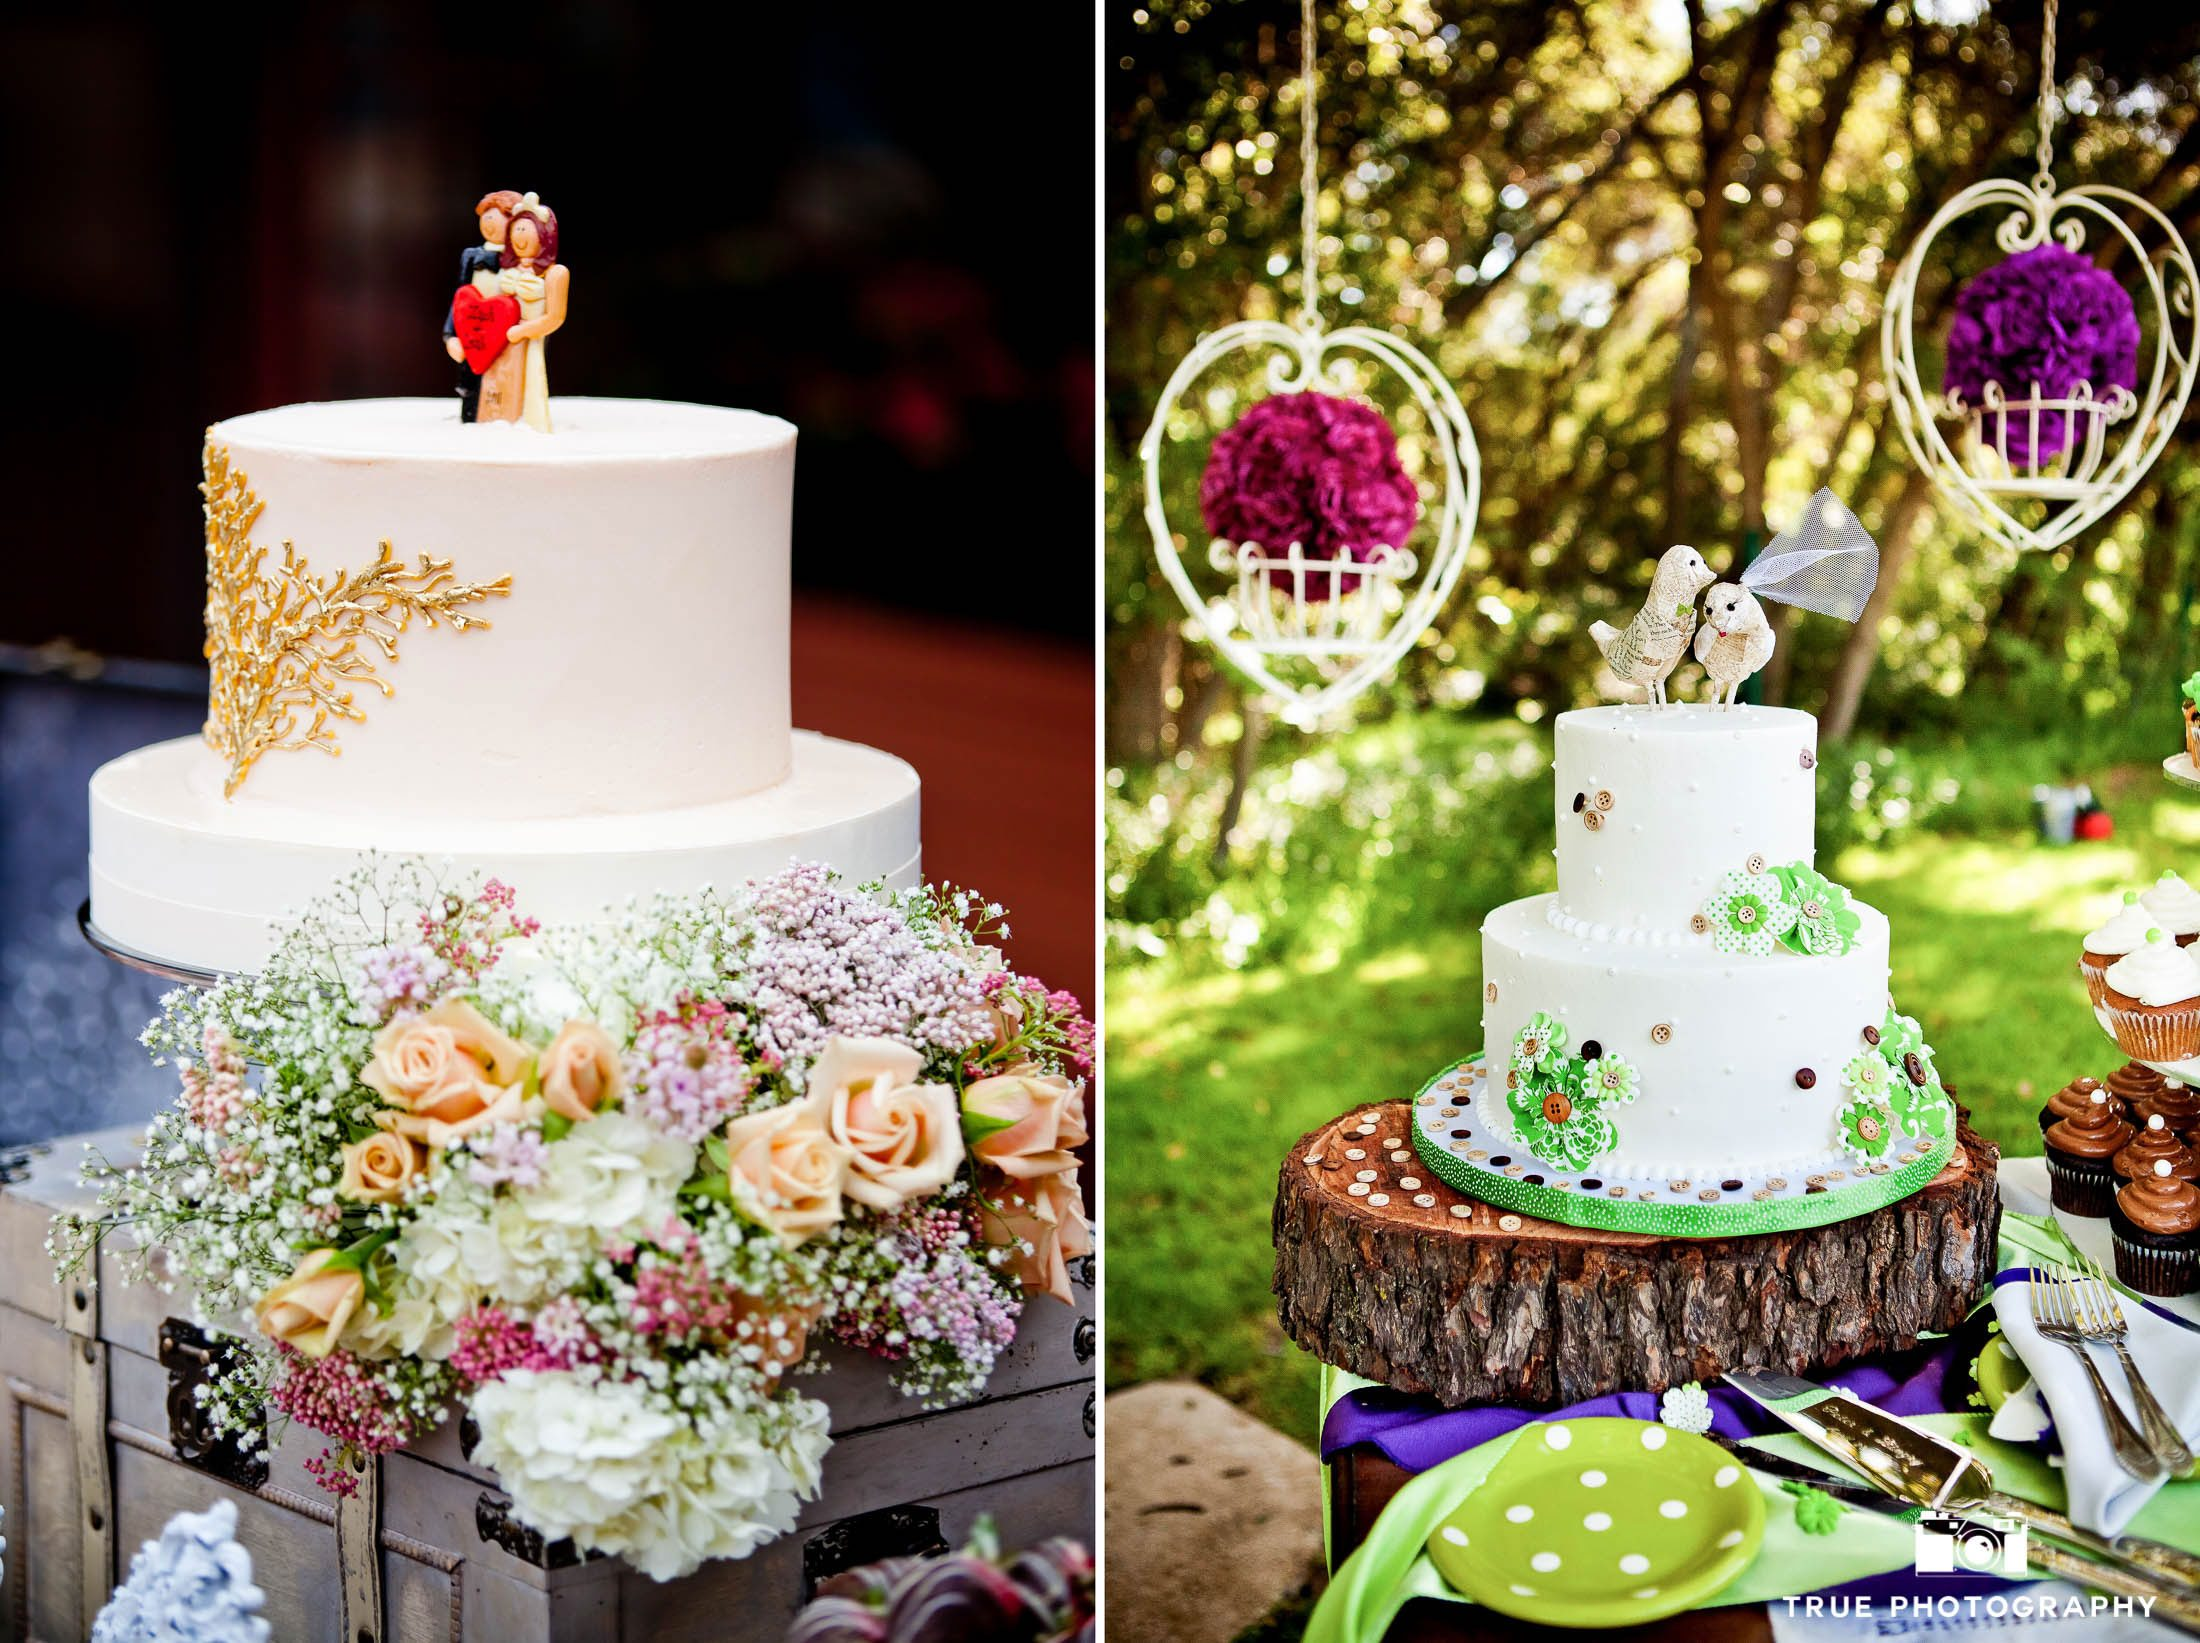 Rustic, chic wedding cake toppers of birds and wedding couple